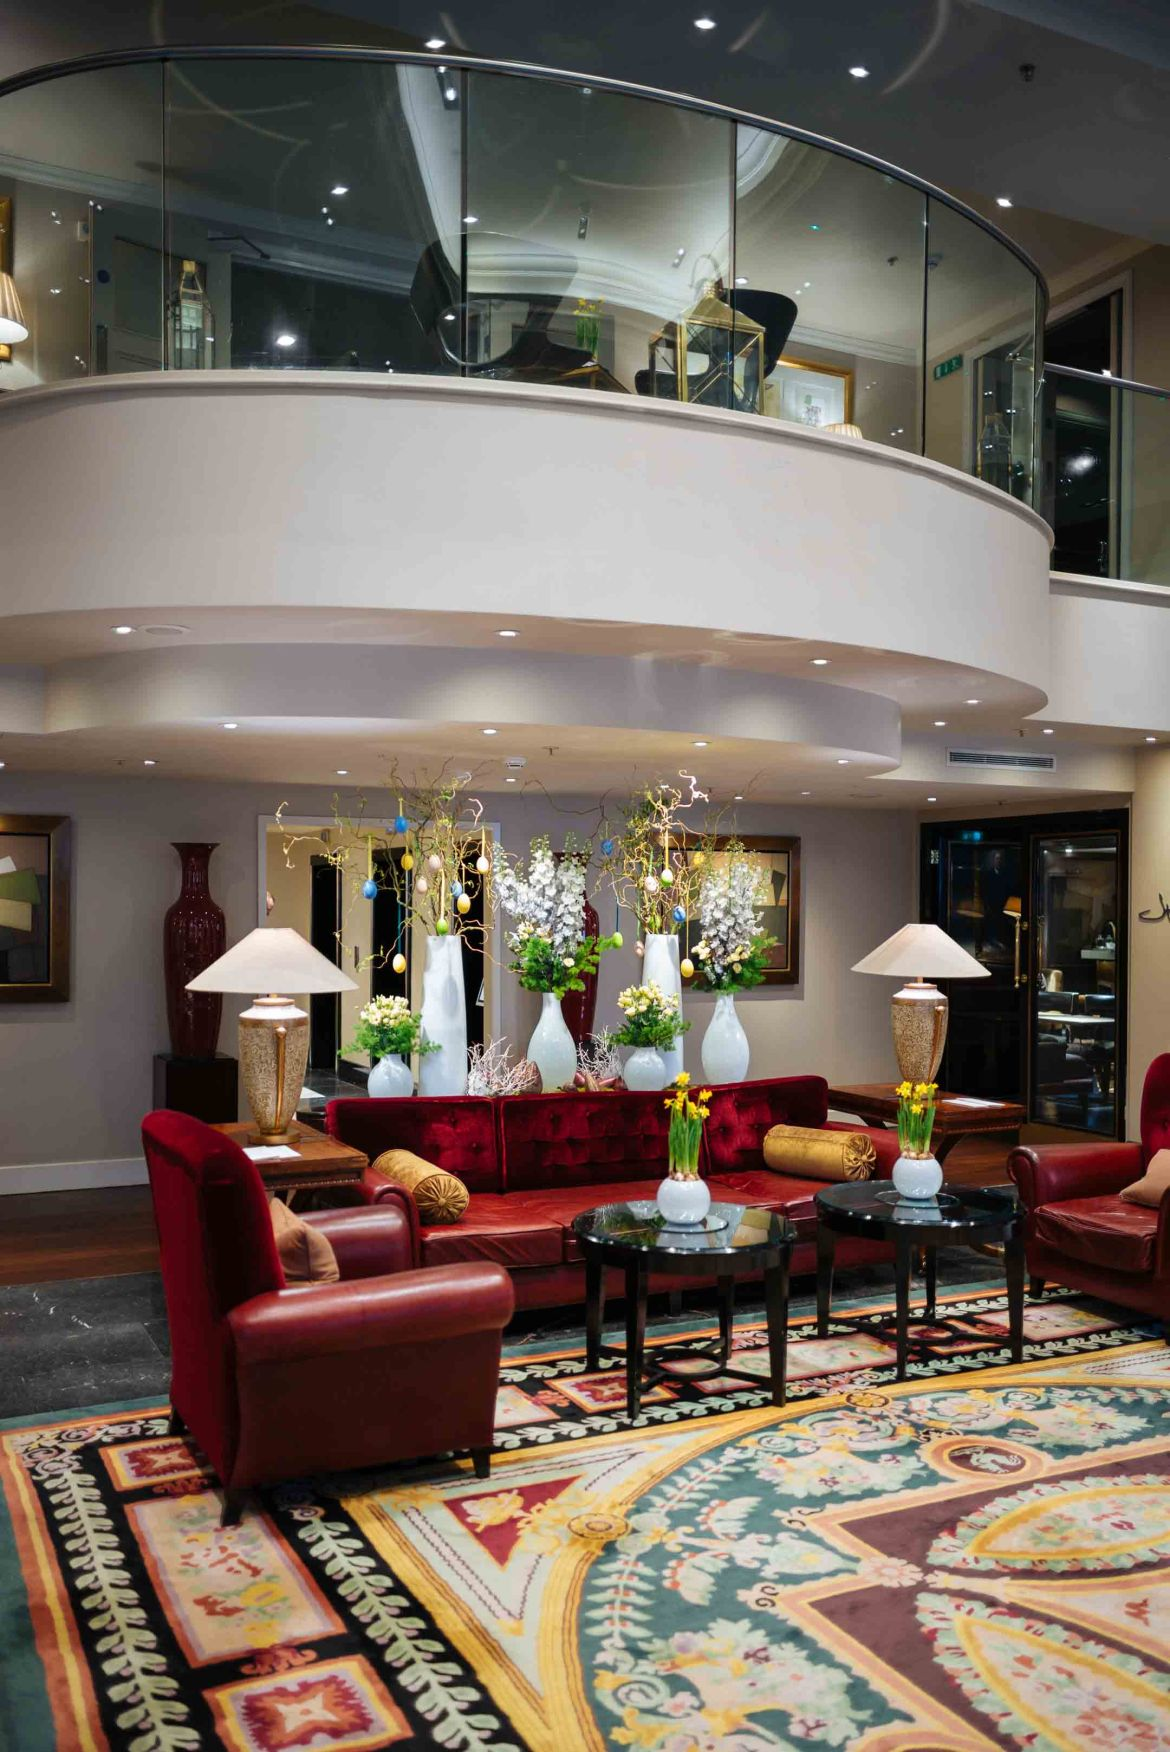 The Taste Edit culinary travel bloggers and photographers recommends when in London, stay at the Sofitel London St. James, one of the best luxury hotels in London with welcoming staff #travel #london #hotel